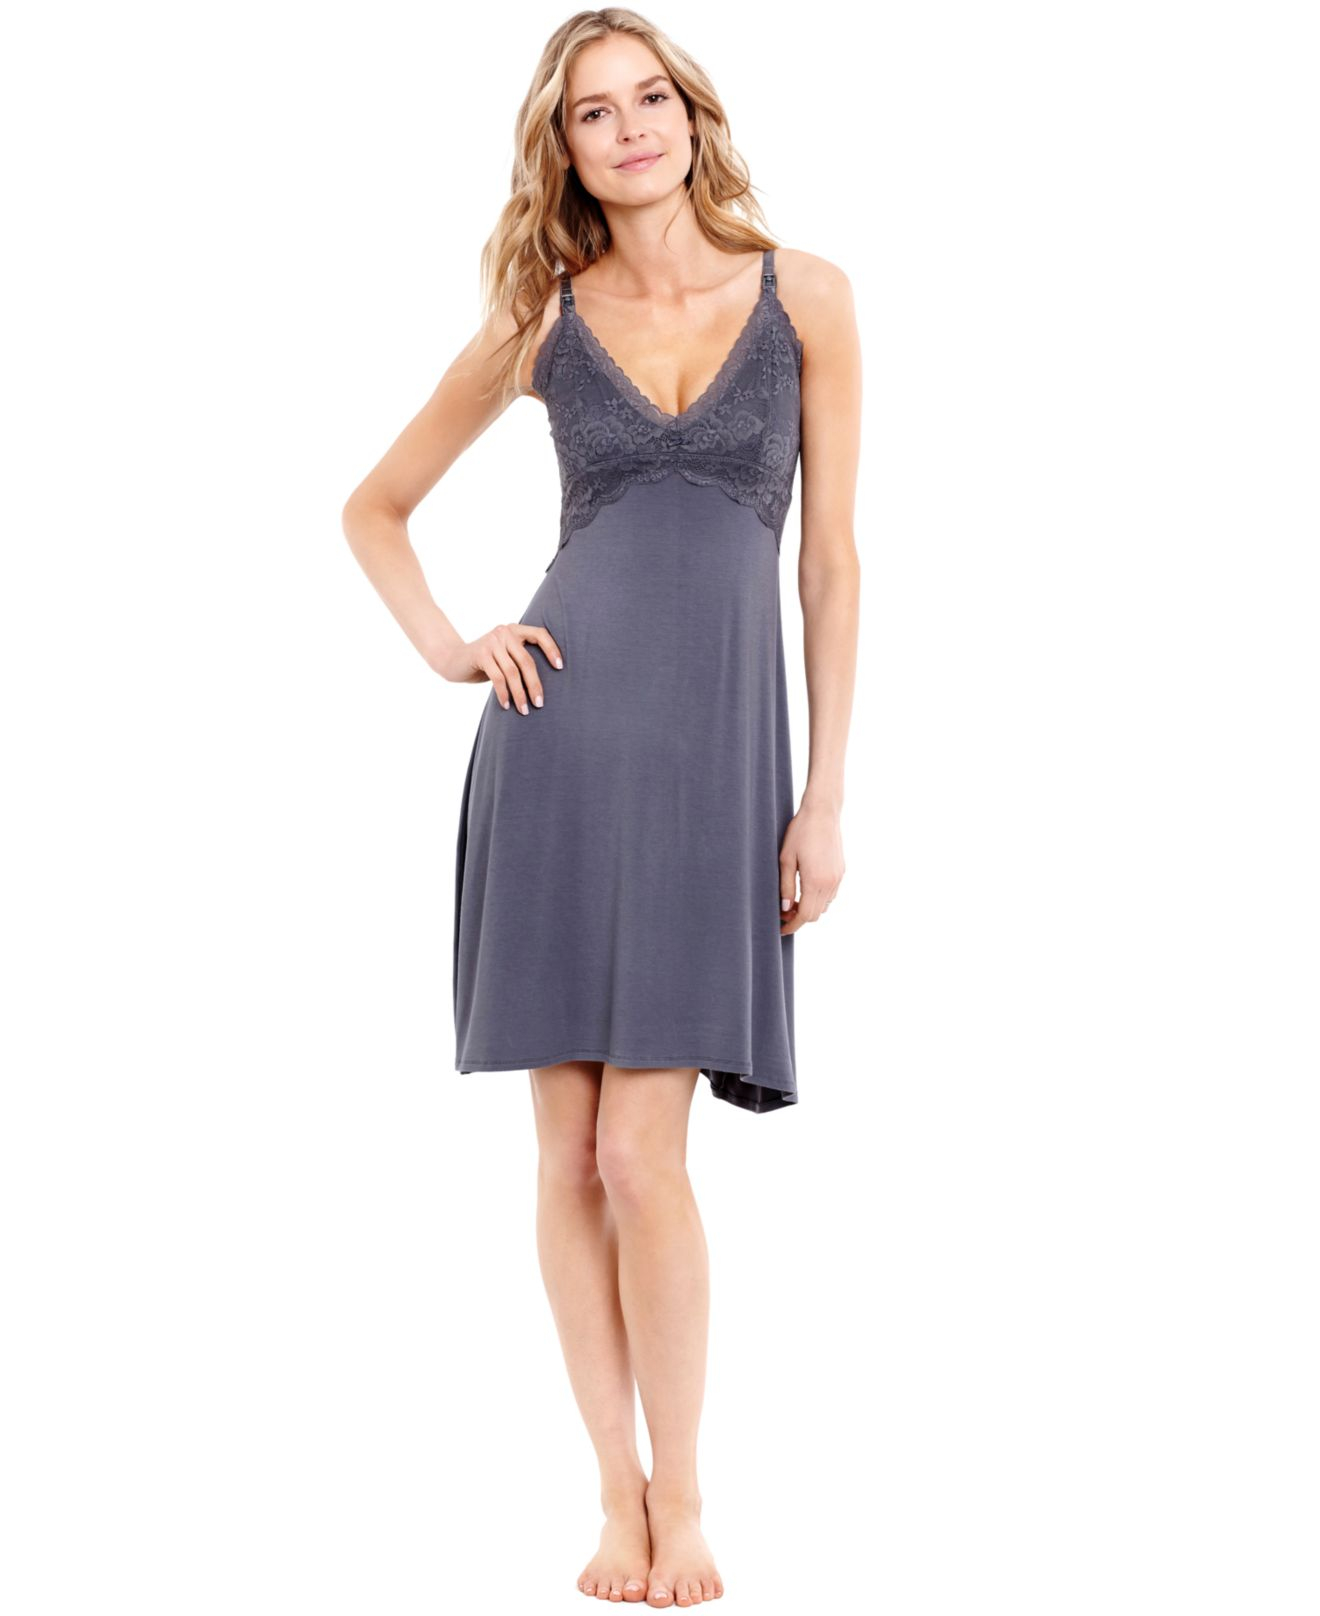 9647953c60b07 Jessica Simpson Maternity Lace Nursing Nightgown in Gray - Lyst